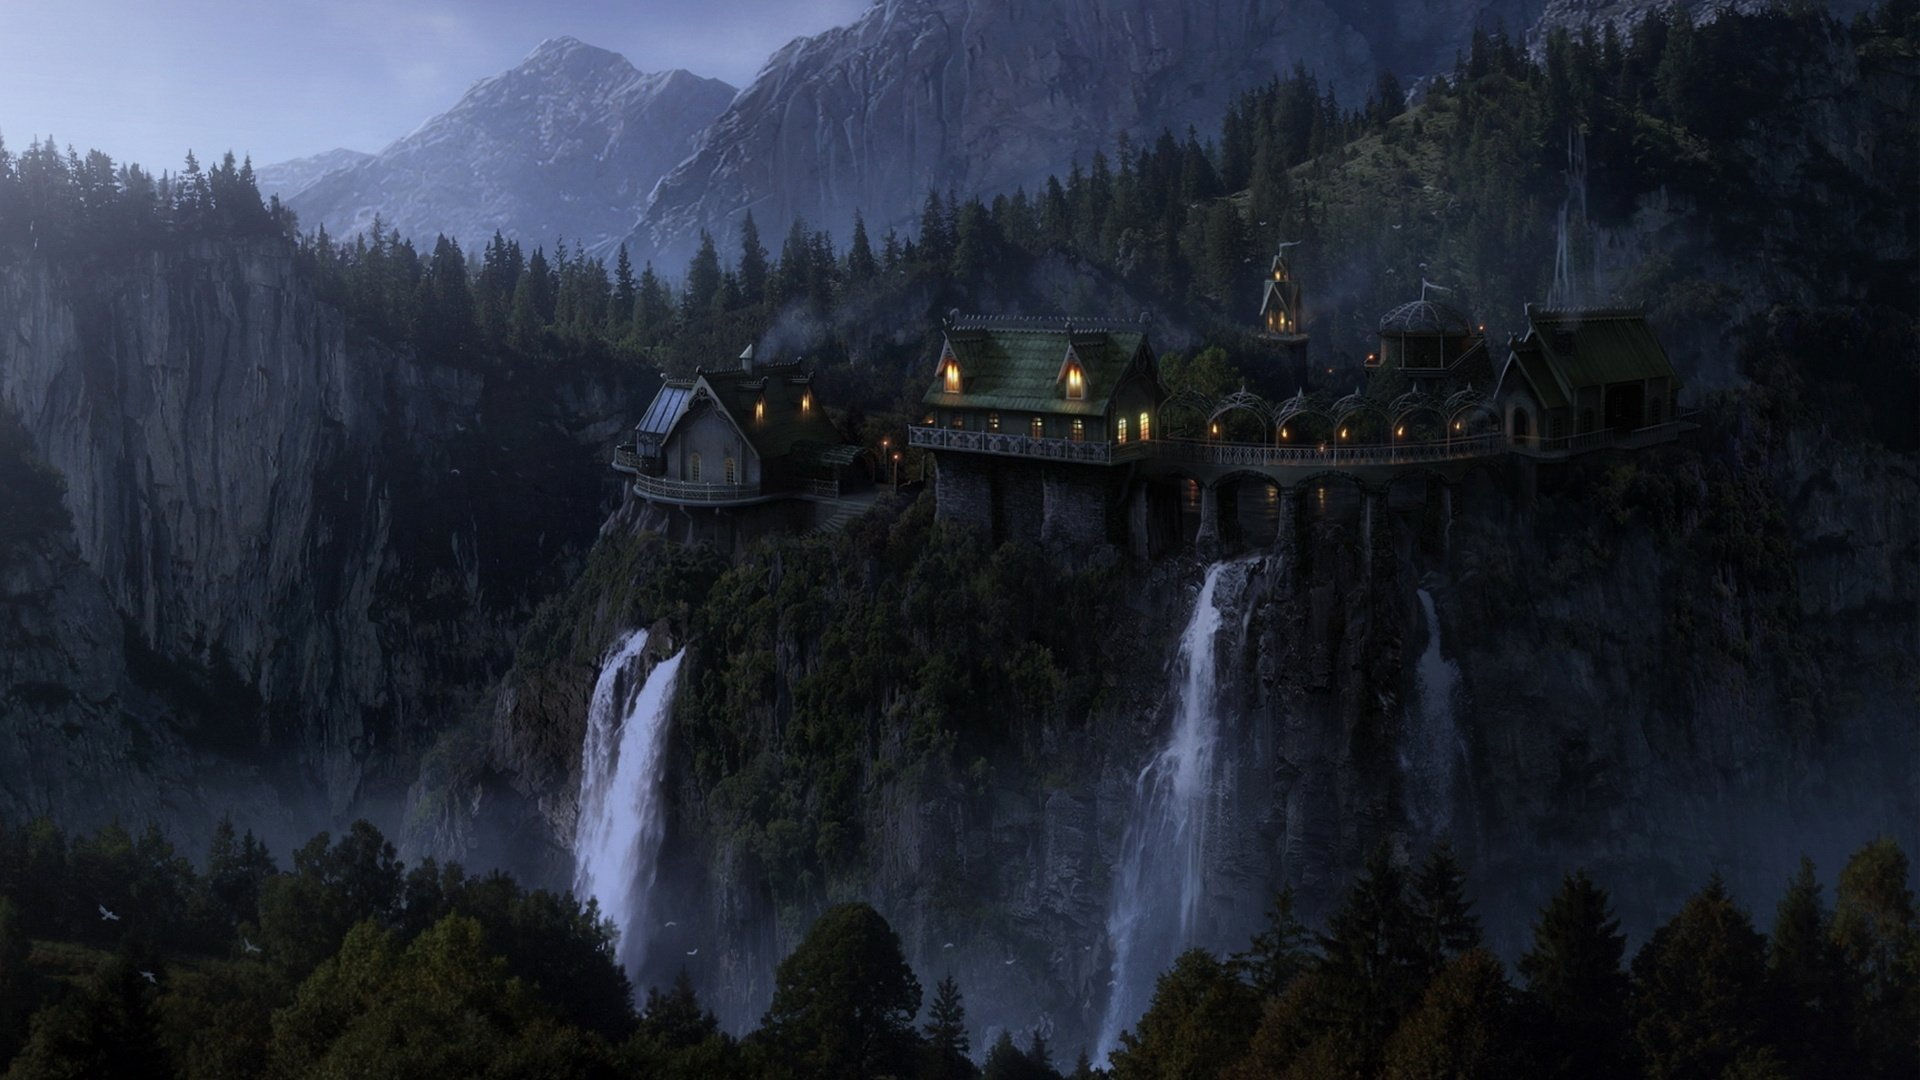 Castle in the mountains near the waterfall